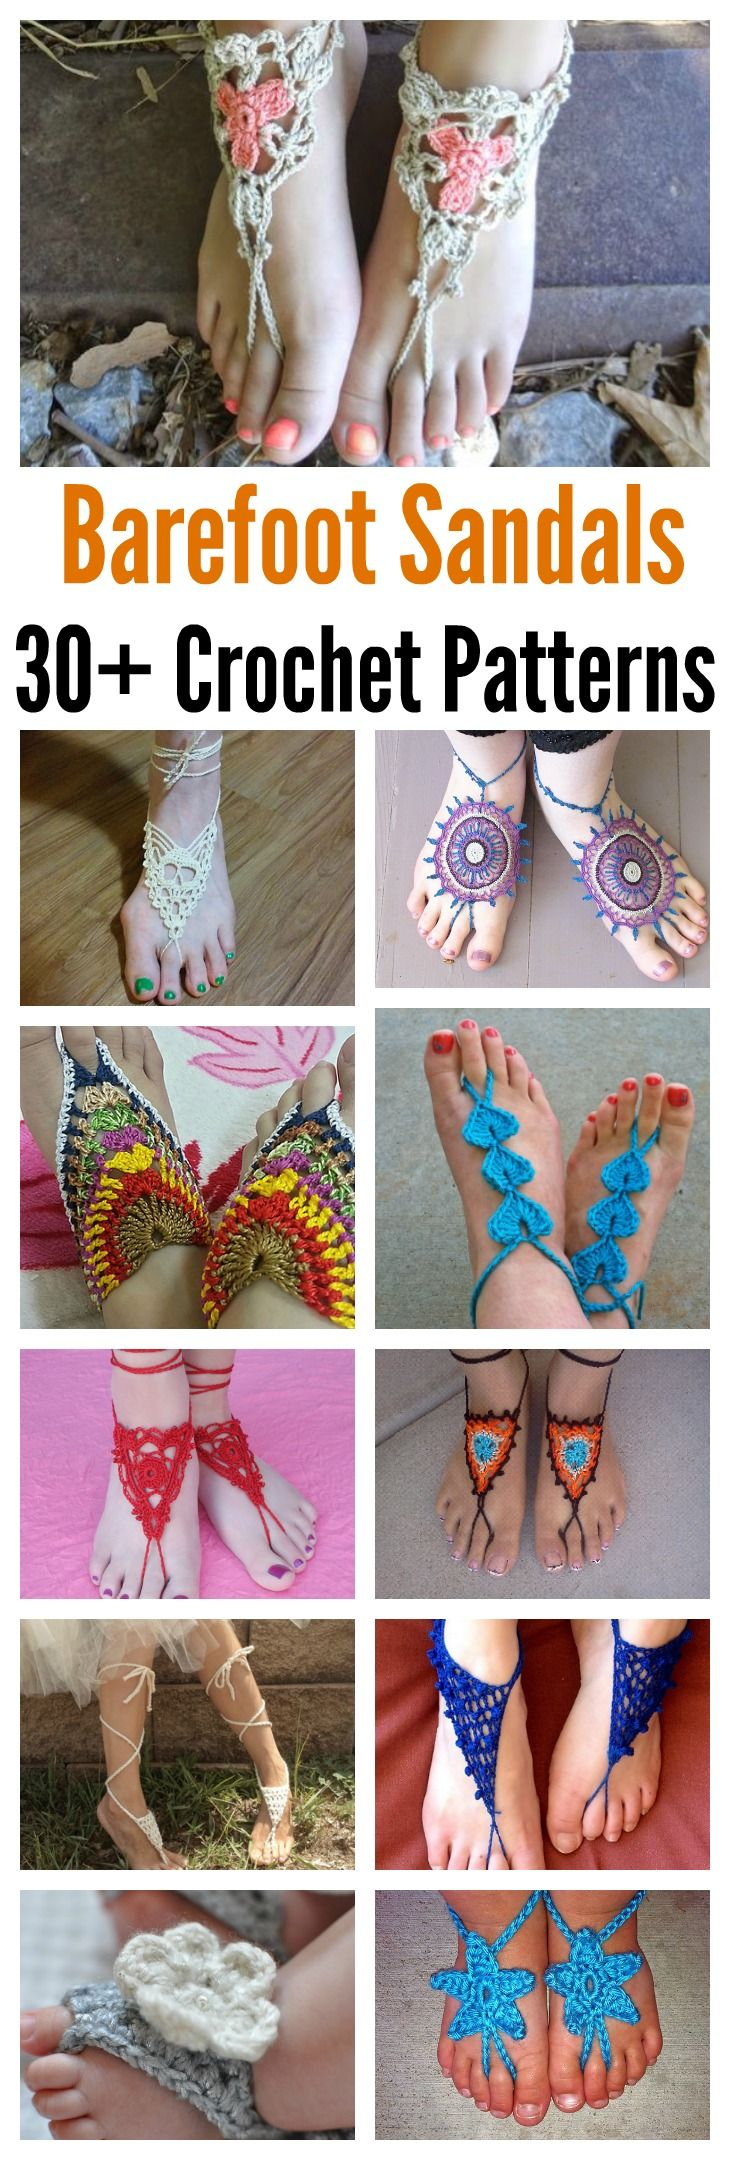 30+ Awesome Crochet Barefoot Sandals Patterns | Sandalias, Tejido y ...